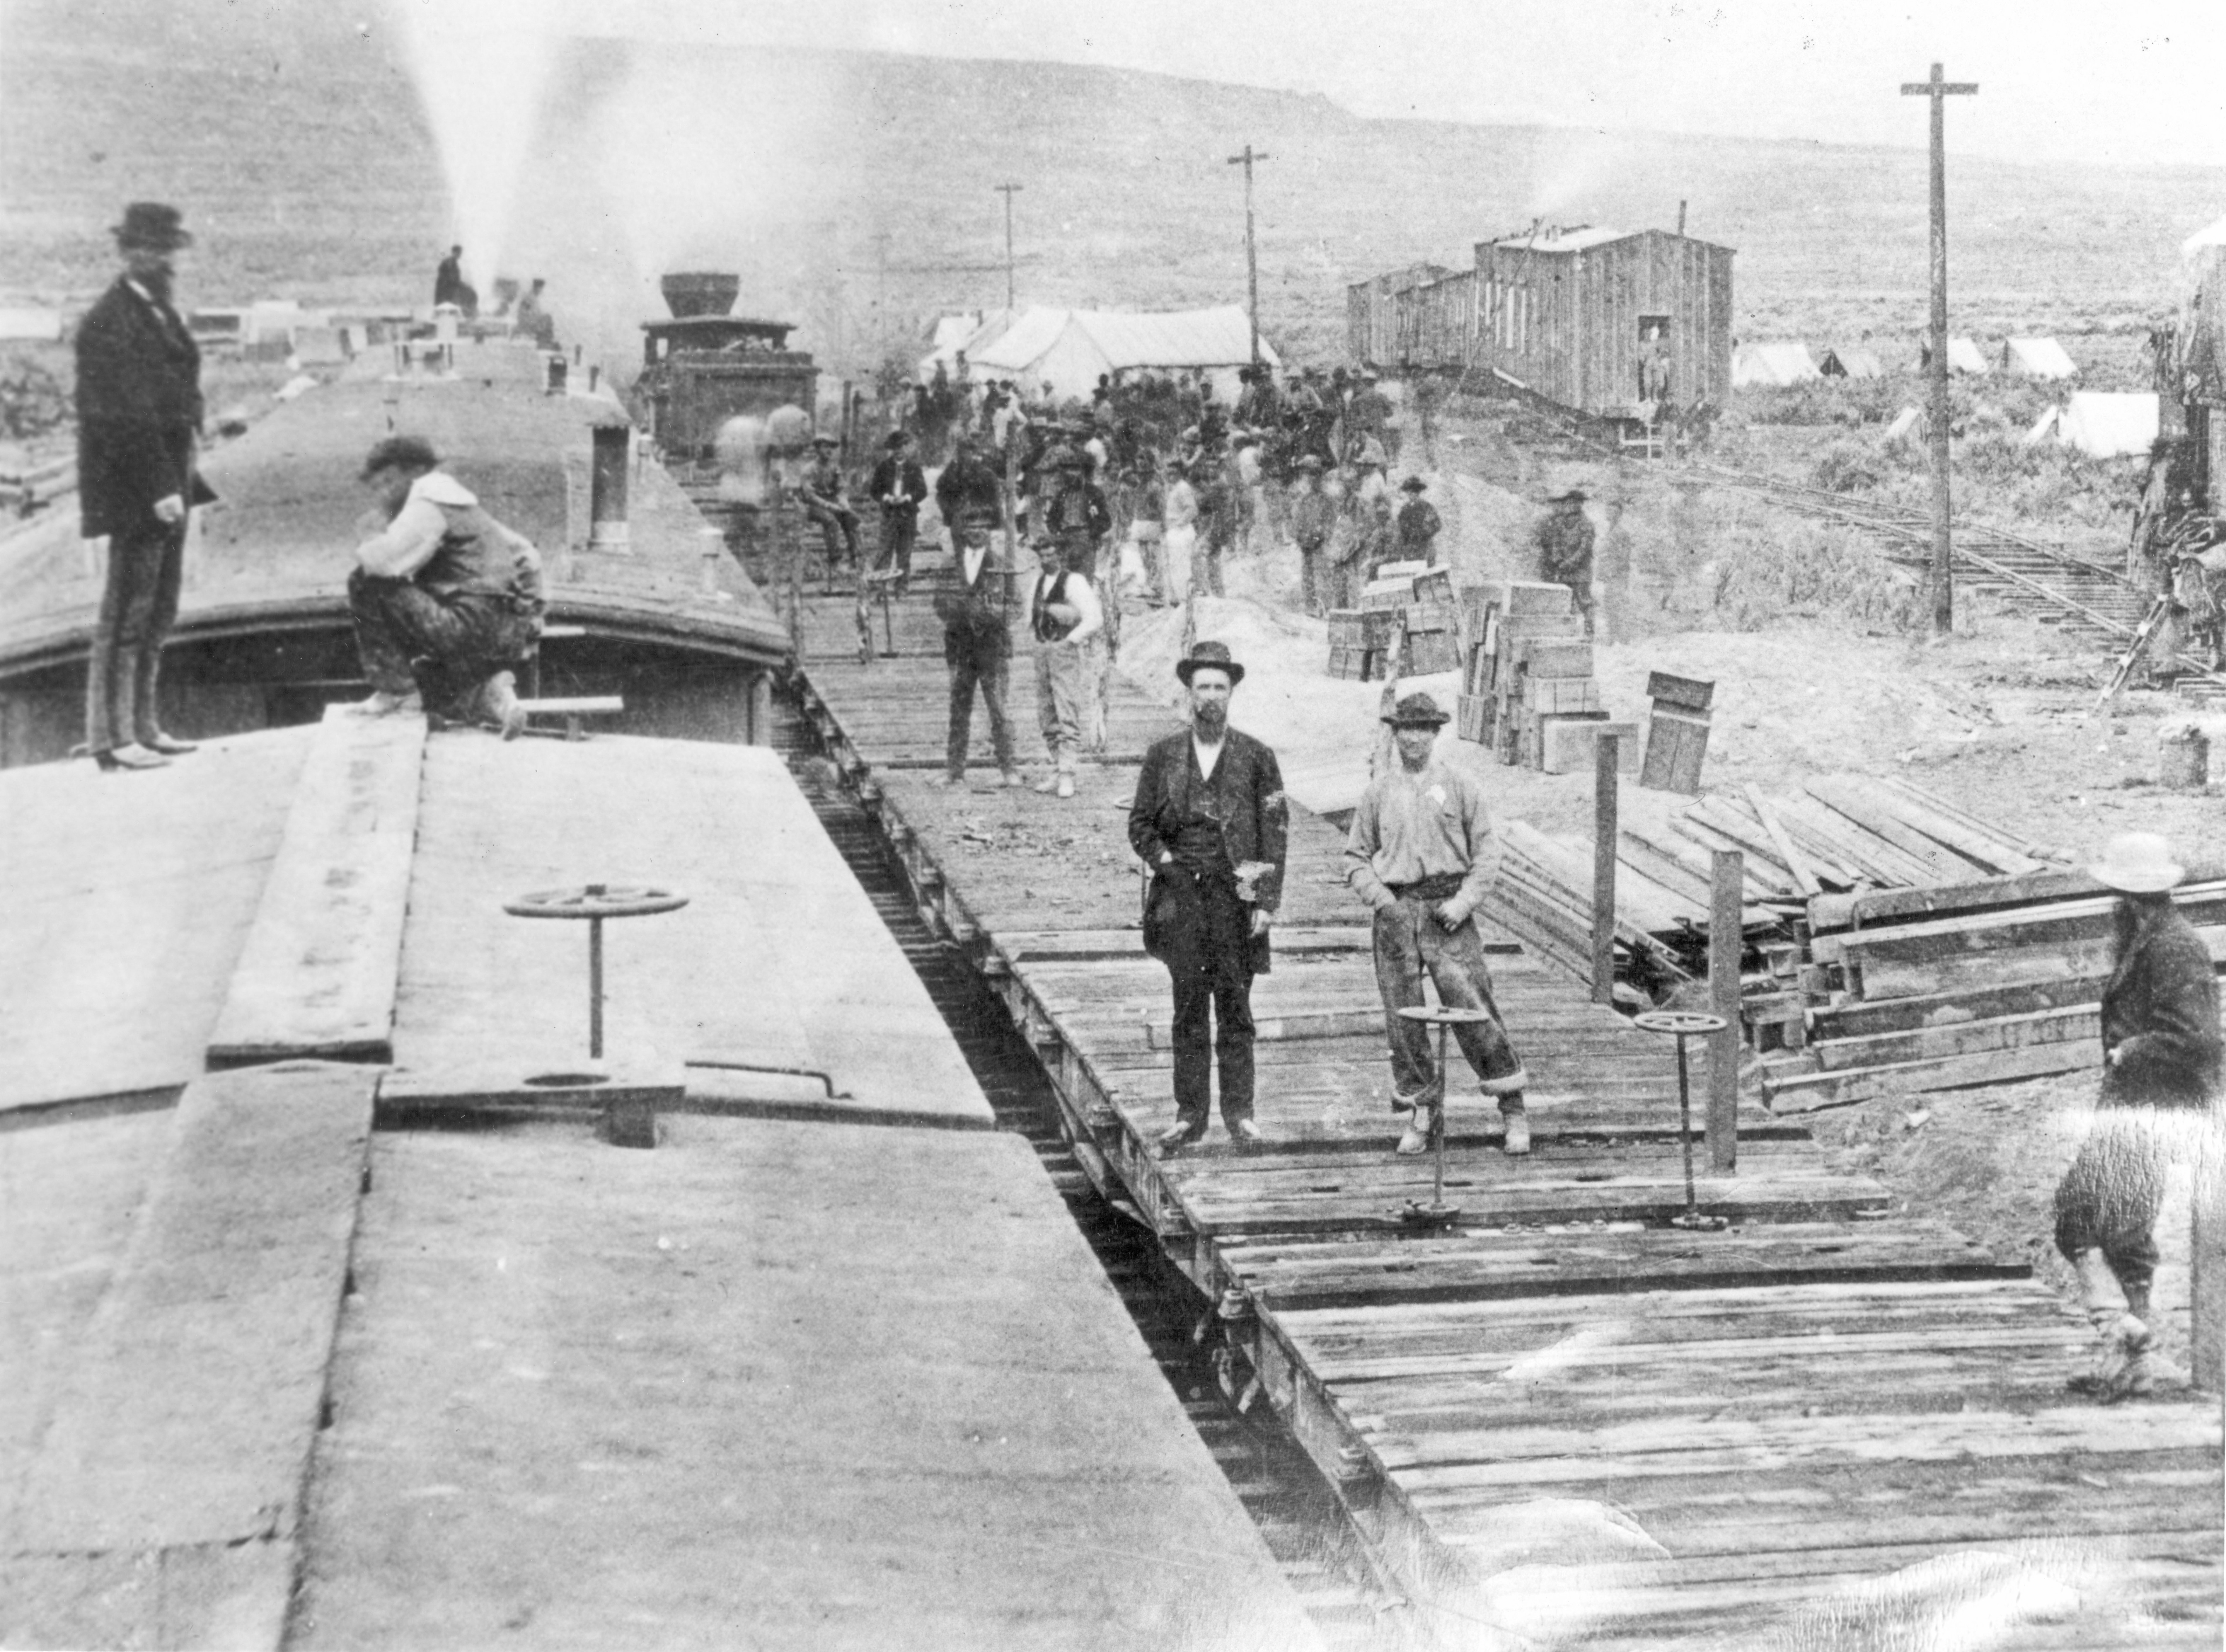 In 1869, Central Pacific Railroad oversaw construction at Victory Camp.